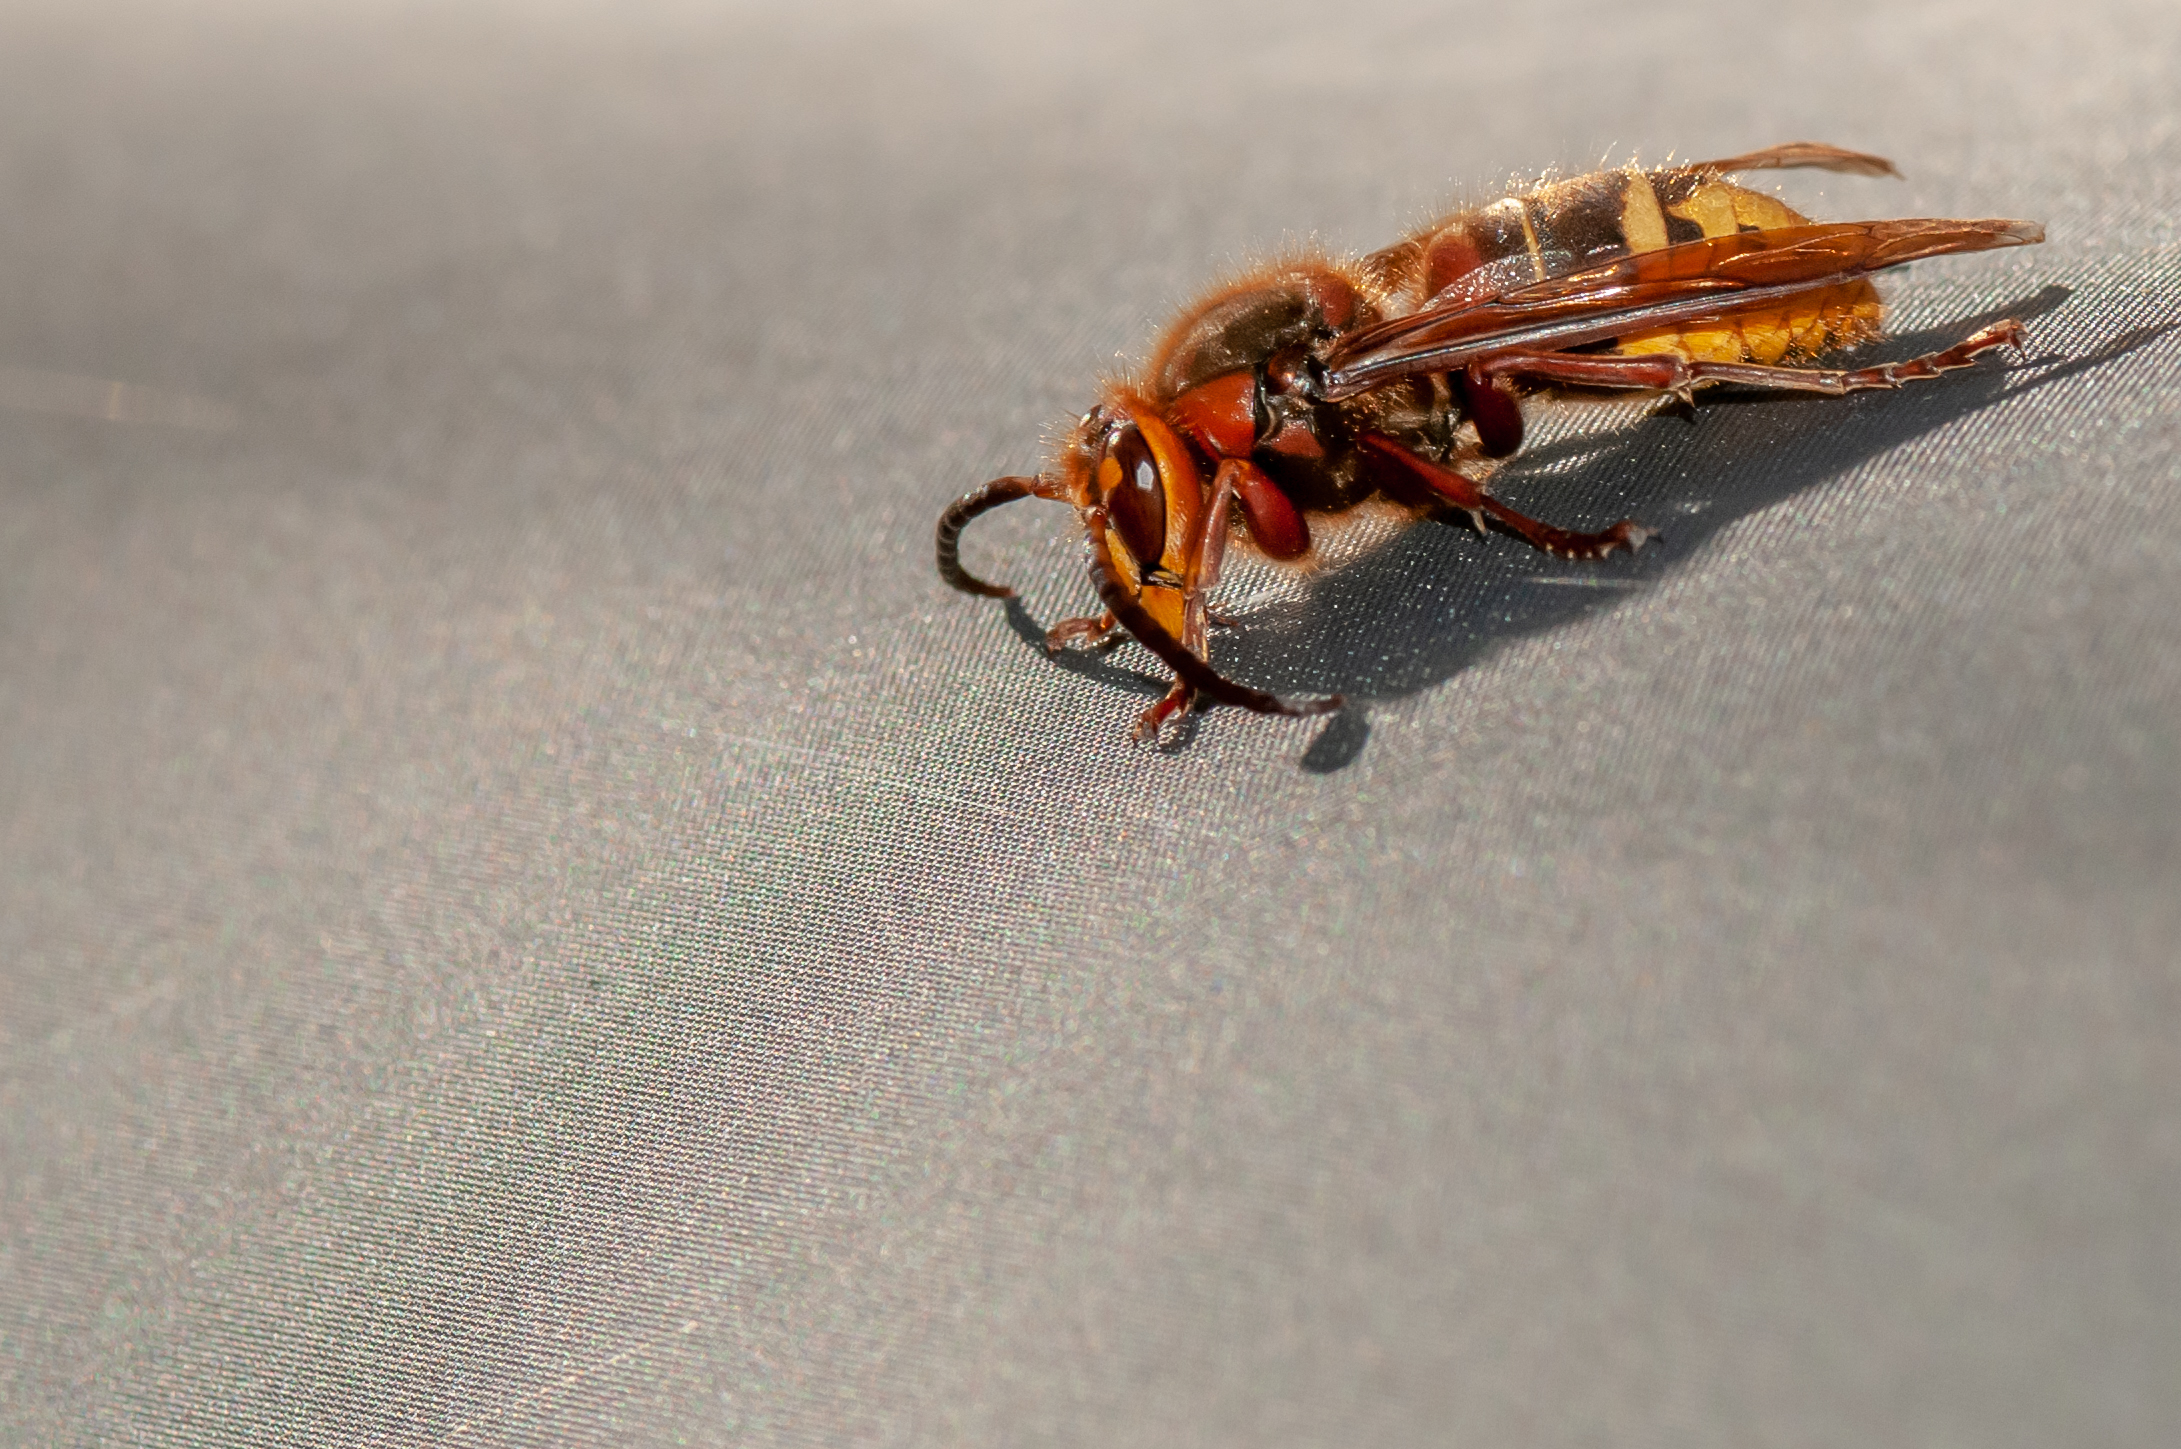 This hornet was warming up on our tent.